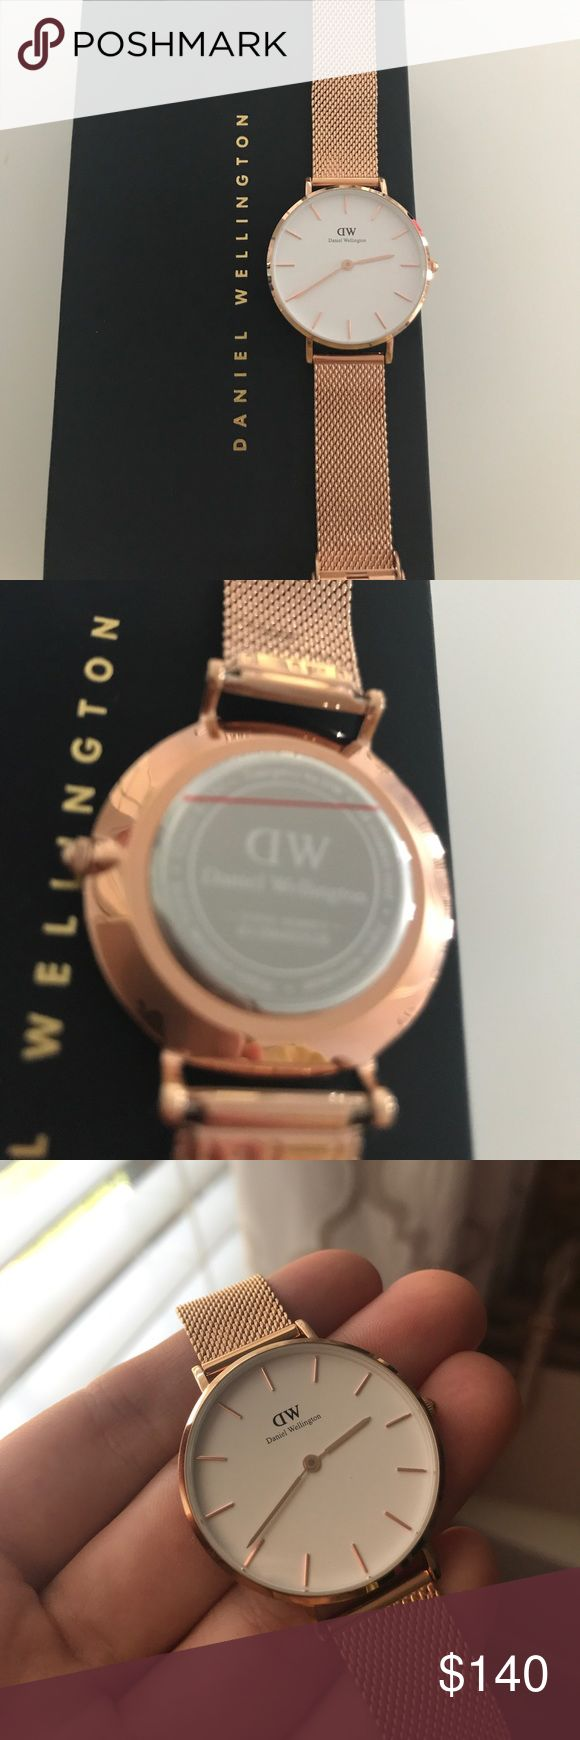 Daniel Wellington Classic Petite Gold Watch Never worn, brand new. As you can see the plastic is still on the back. Comes with box and everything you need to adjust the watch, as well as instructions. Beautiful minimalist watch. Just wasn't my style so I'm deciding to sell. Willing to netotiate price but no trades!! 32mm Daniel Wellington Accessories Watches